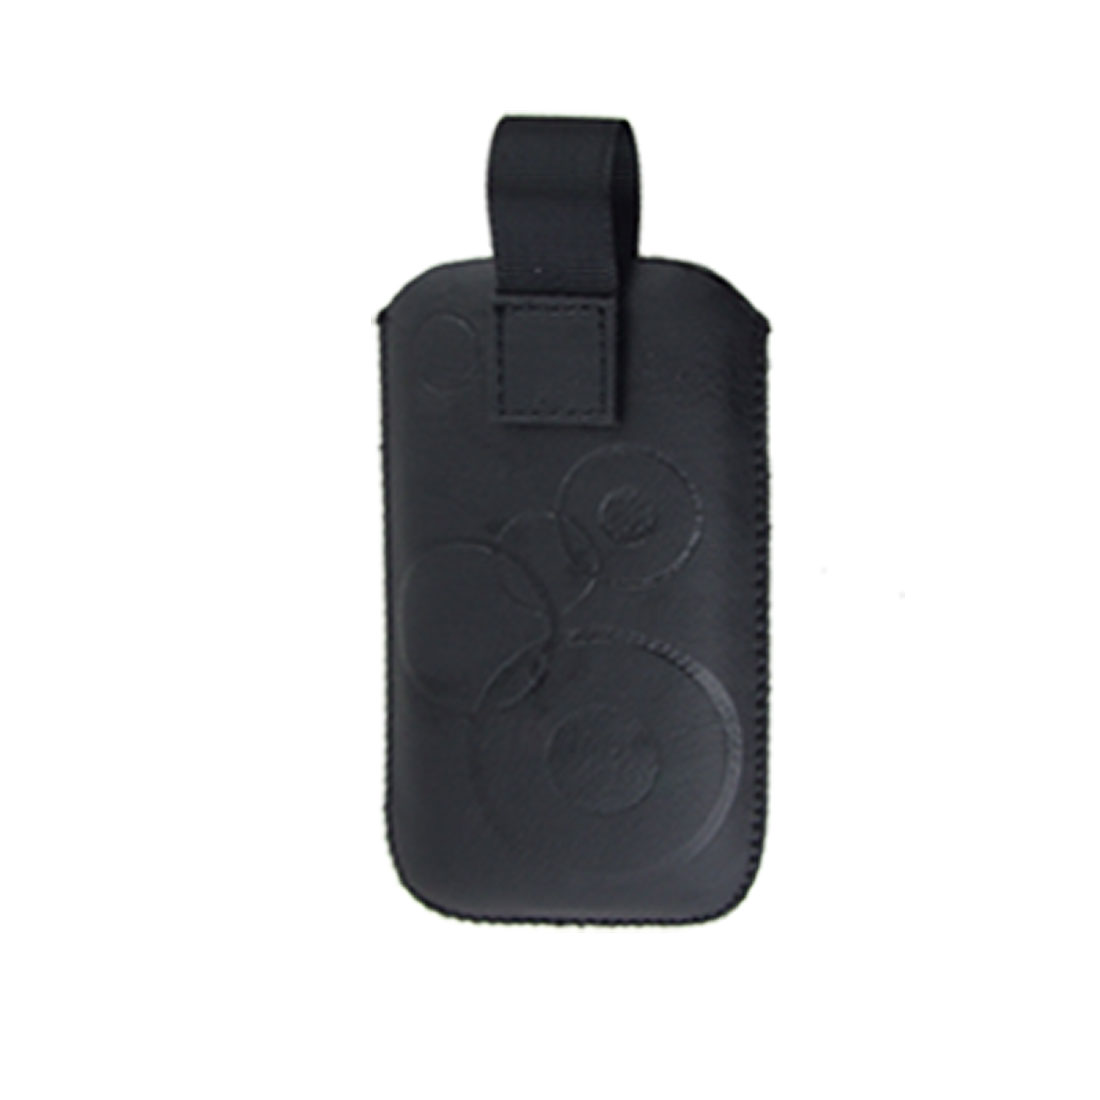 Black Faux Leather Circles Pull Strap Pouch for Nokia 5800